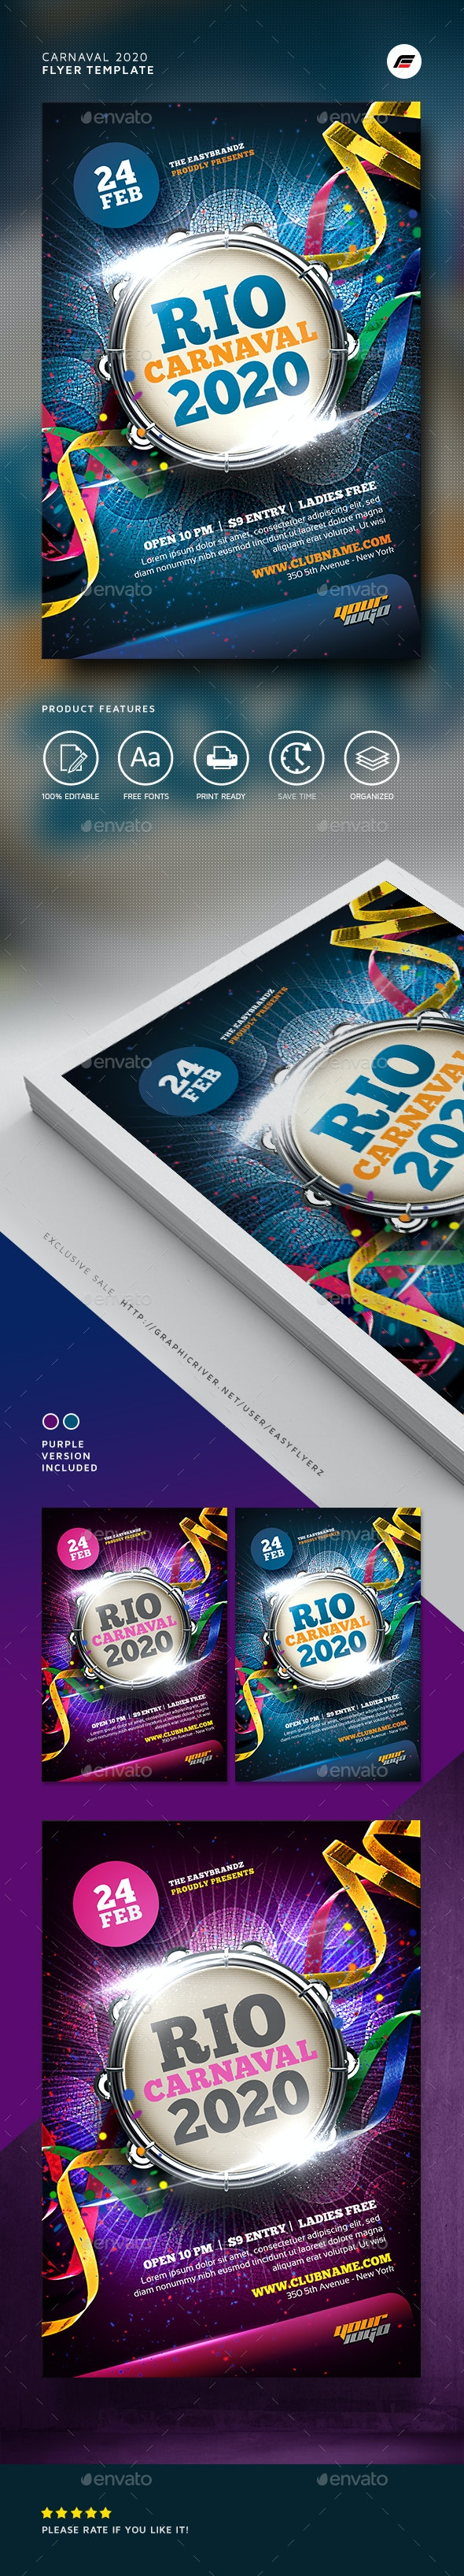 Carnaval 2020 Flyer Template - Events Flyers